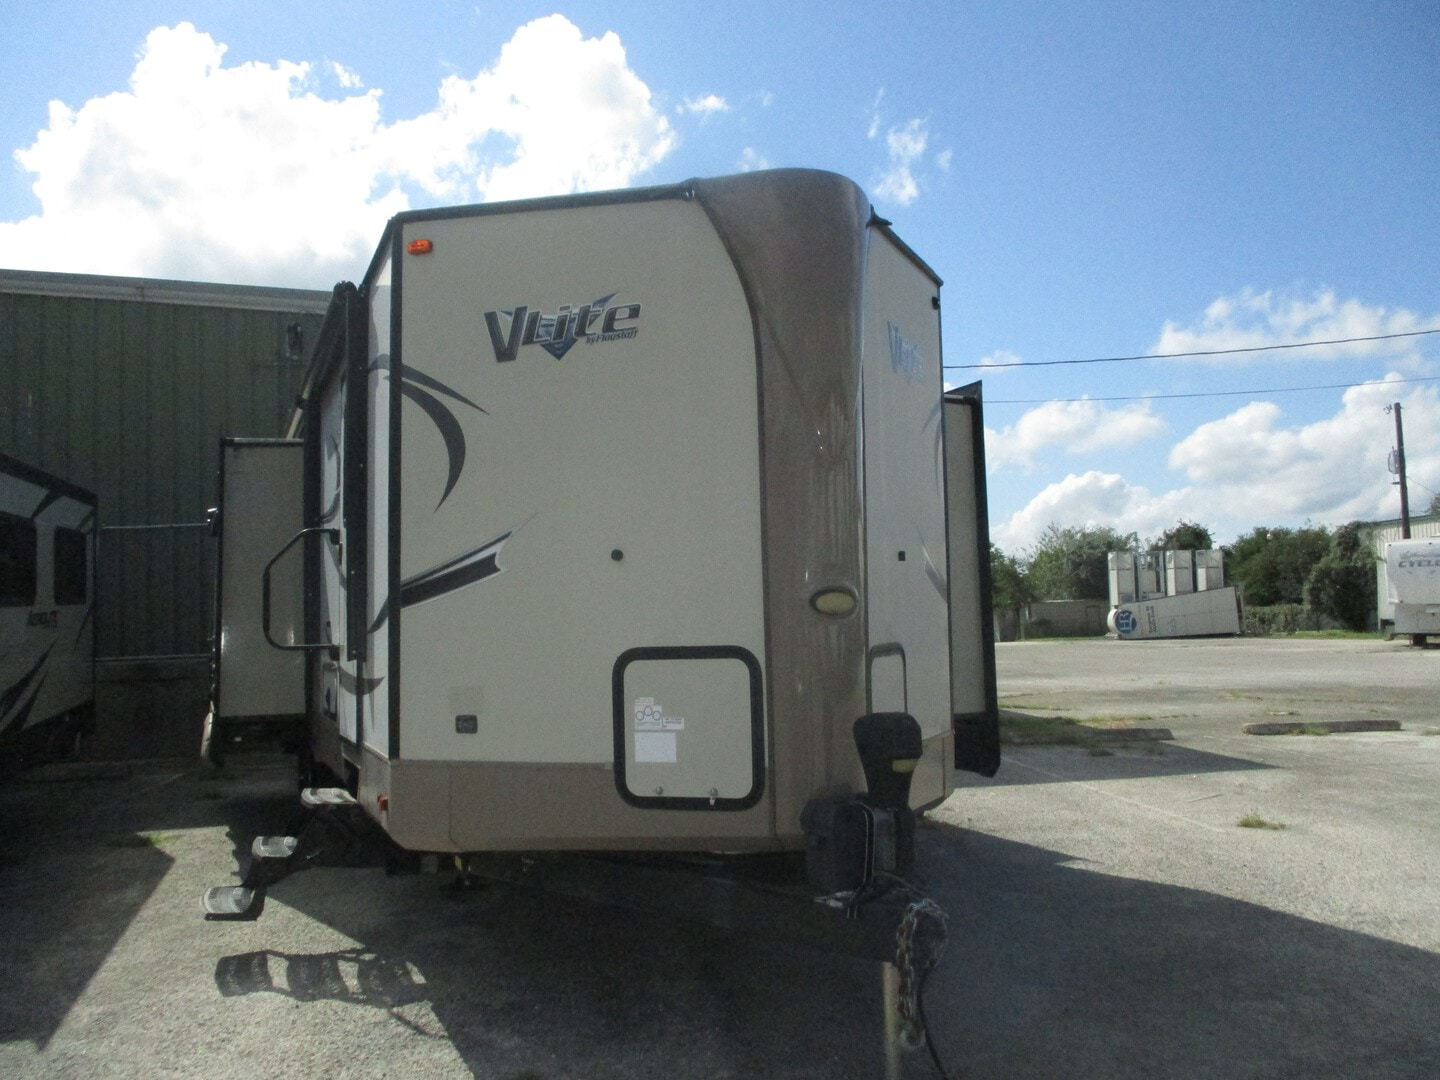 Used, 2018, Forest River, Flagstaff V-lite WKSS, Travel Trailers